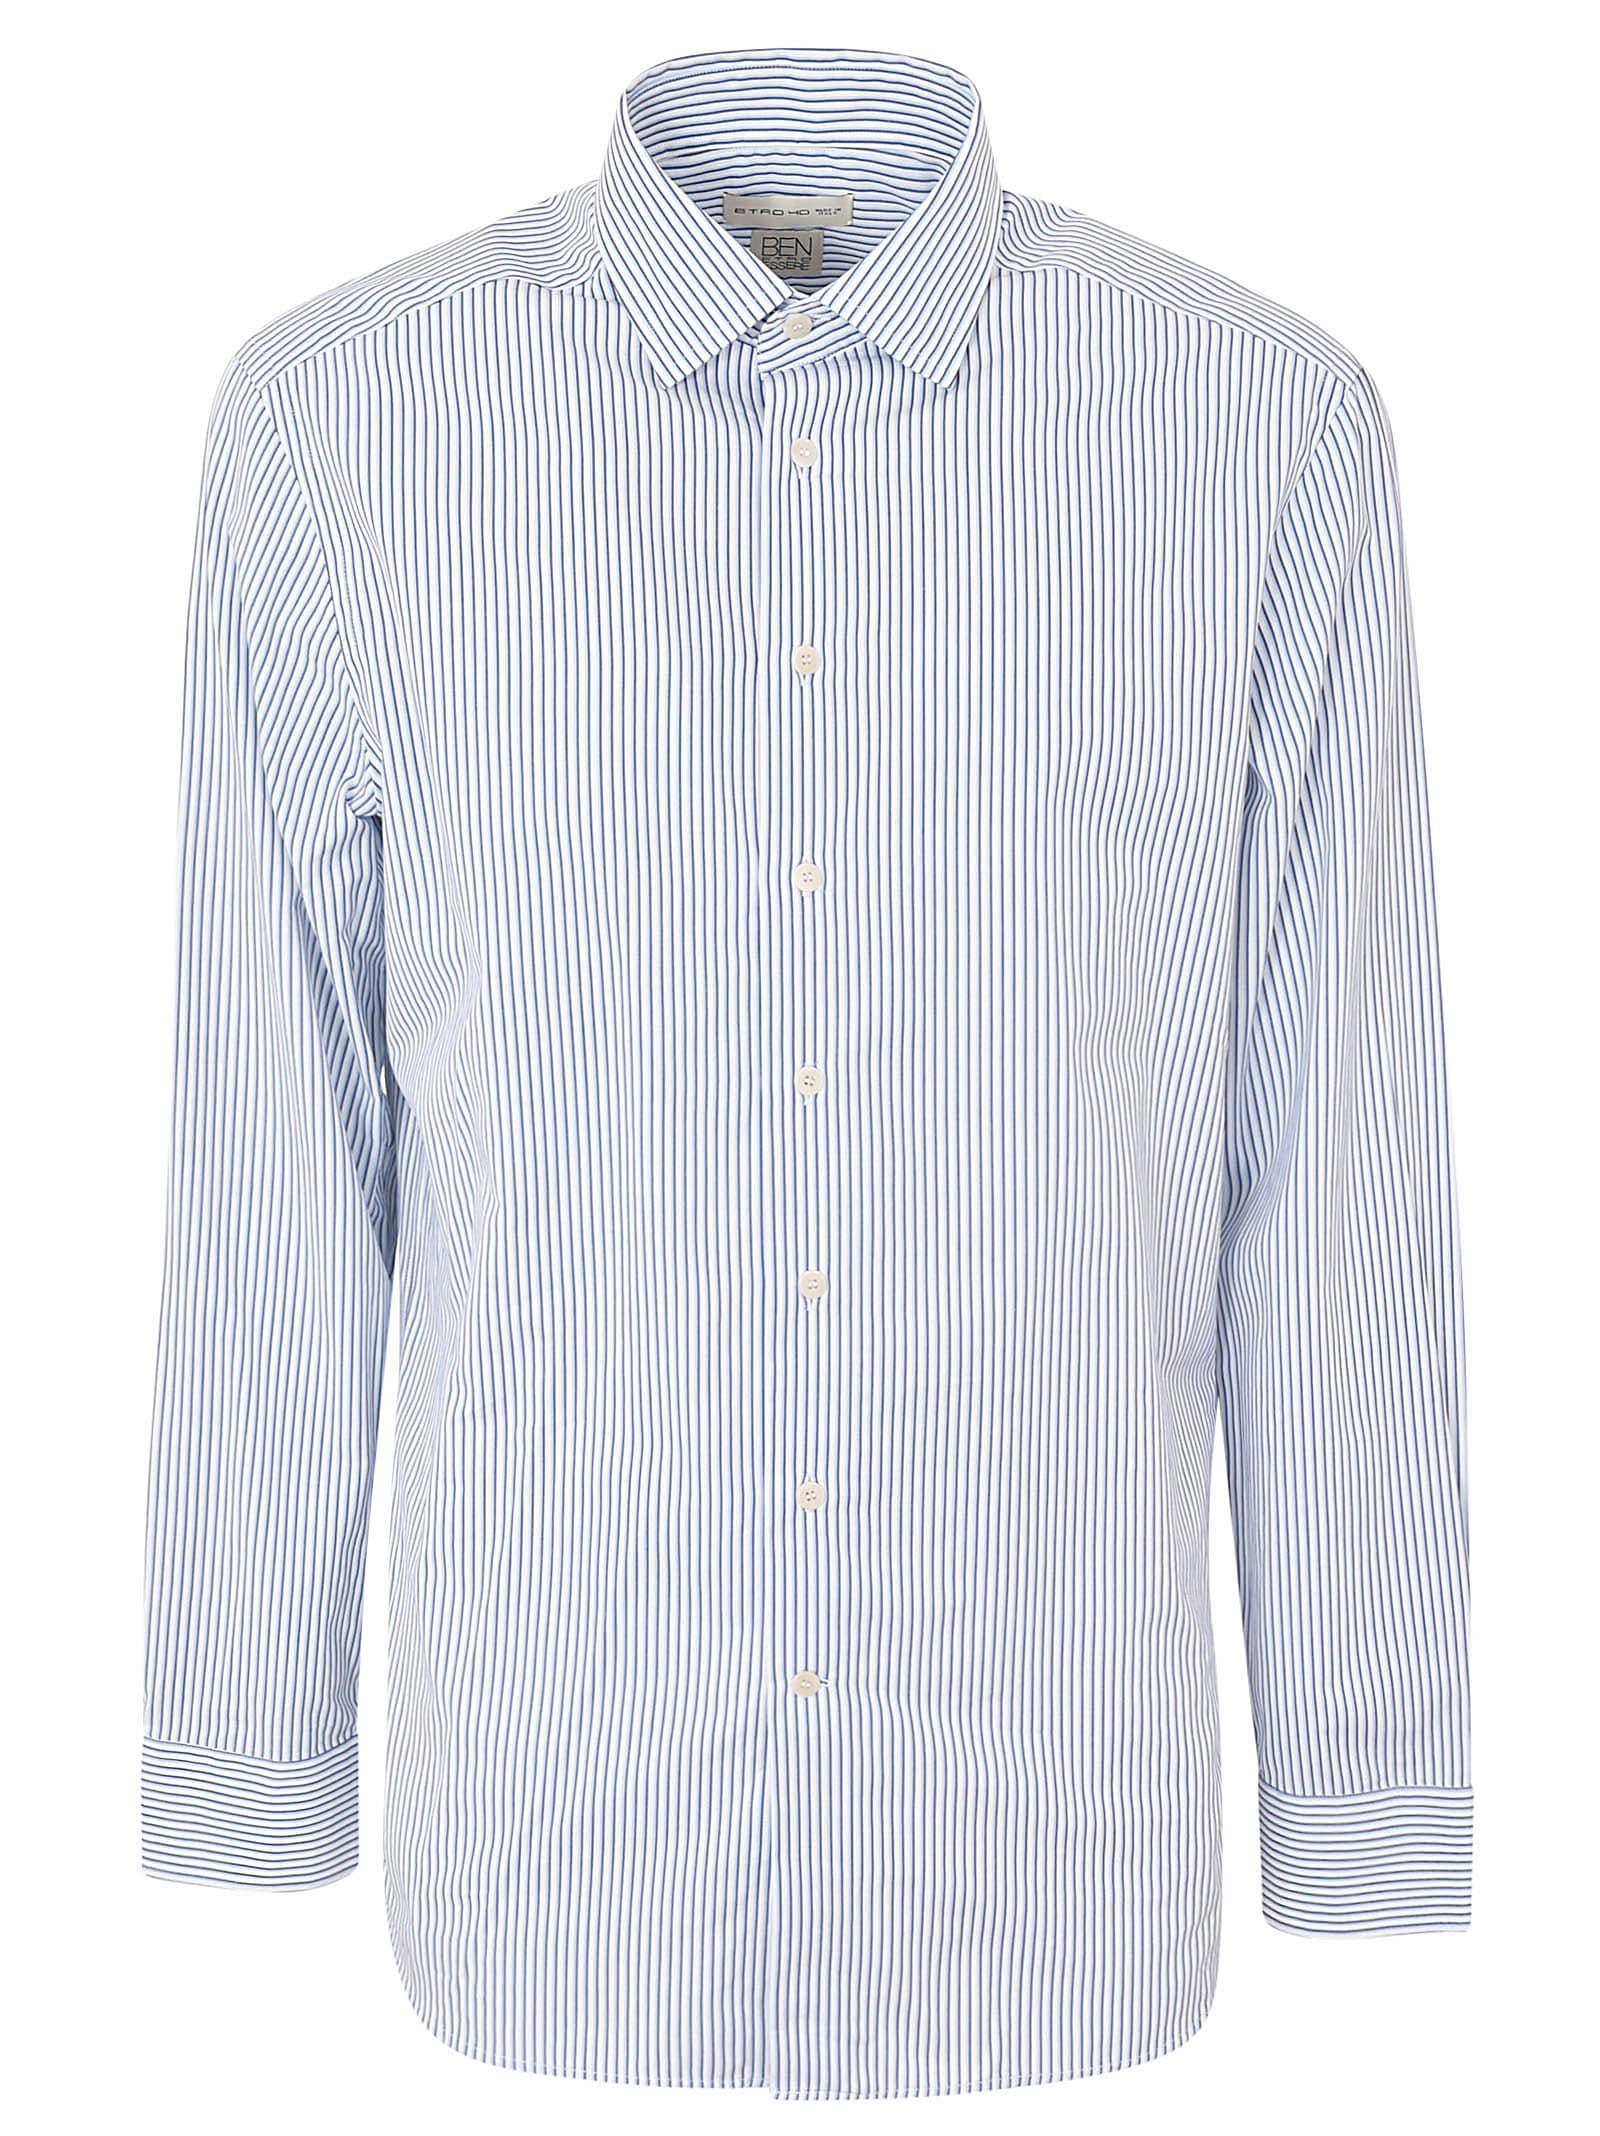 Etro Striped Shirt